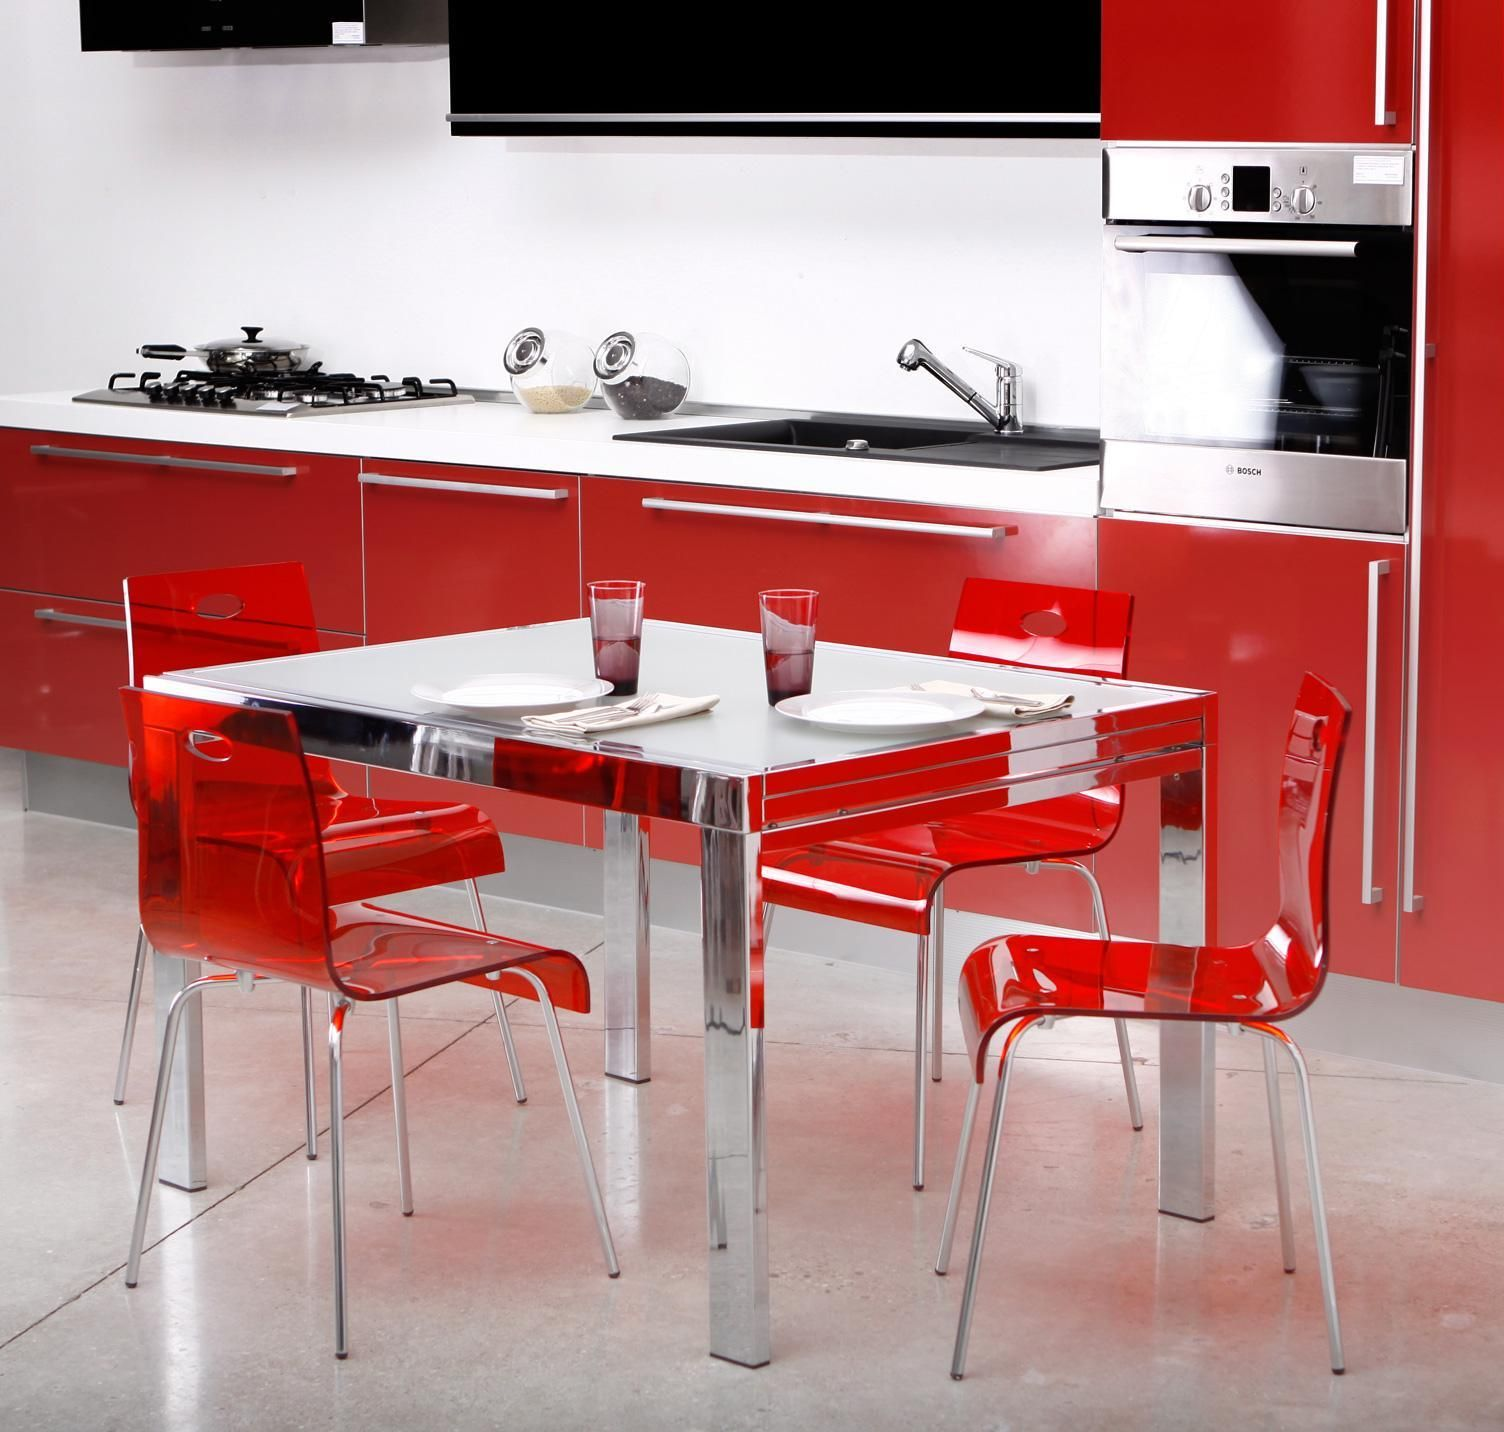 Cool Stylish Kitchen Mesmerizing Modern Red Gl Acrylic Dining Chairs And Square Stainless Table Cabinetry Glamorous Best Ikea Furniture With Expandable